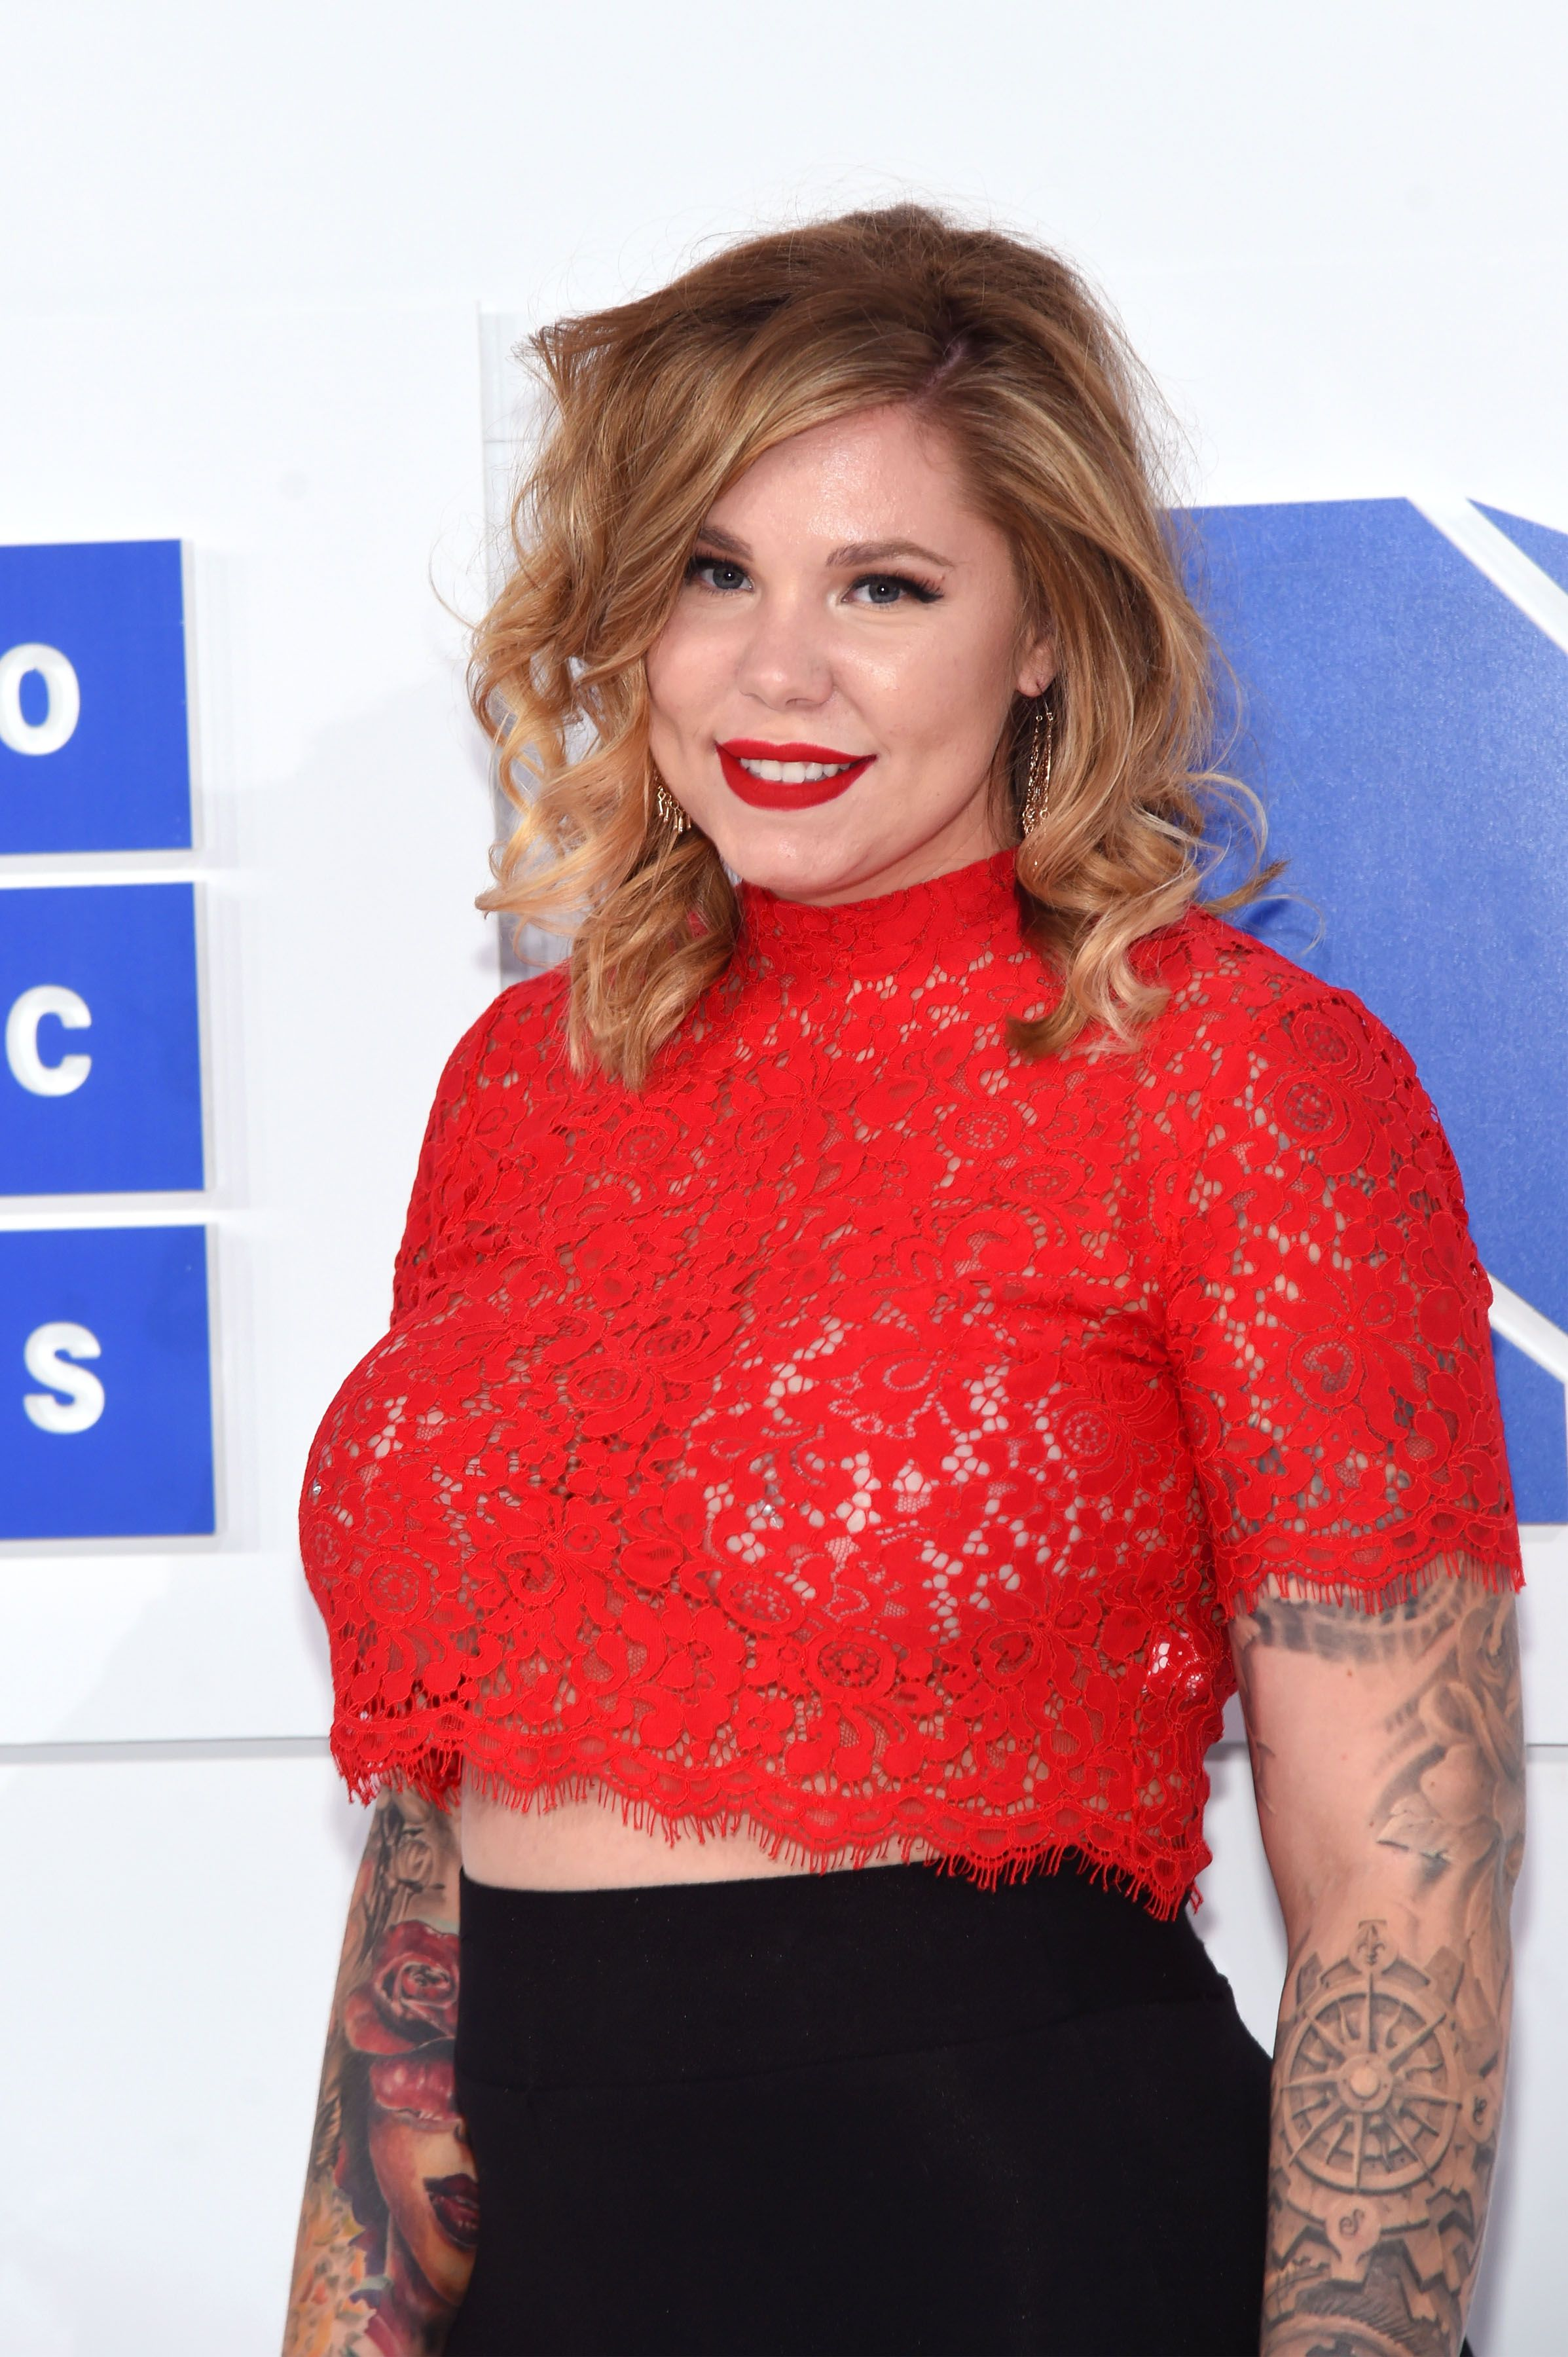 Kailyn Lowry smiling